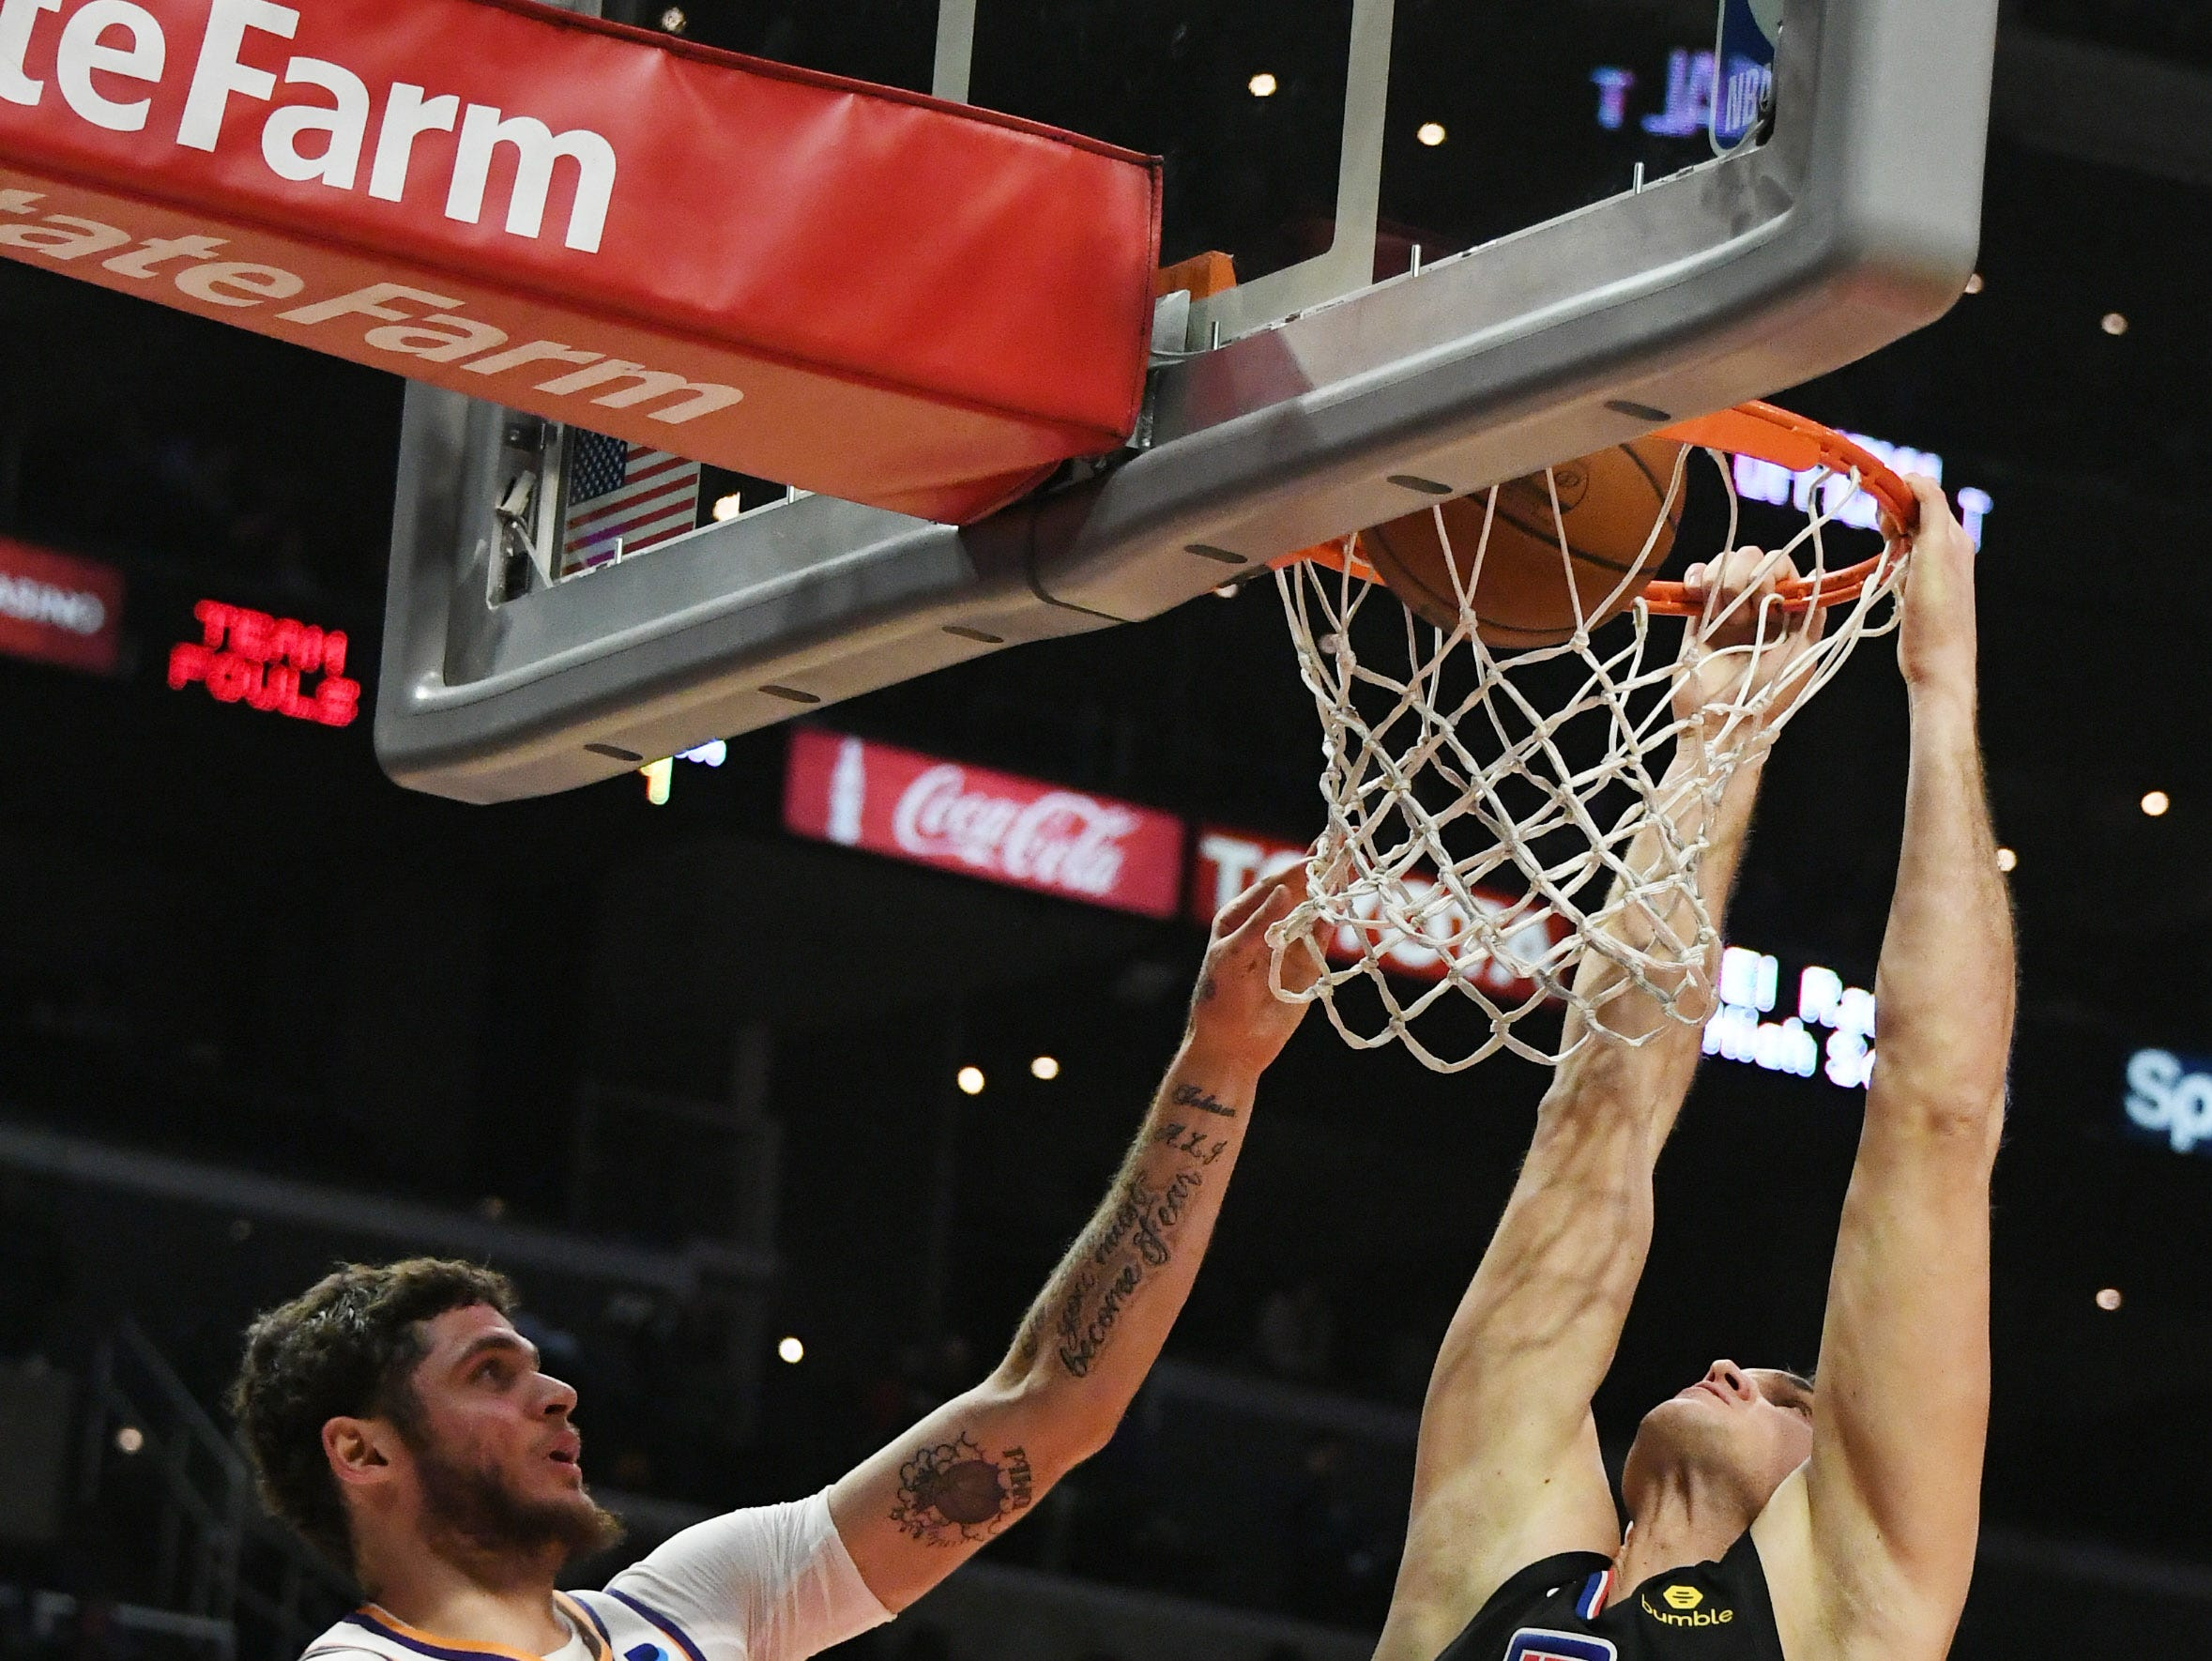 Feb 13, 2019; Los Angeles, CA, USA; LA Clippers forward Danilo Gallinari (8) dunks the ball against the Phoenix Suns in the second half at Staples Center. Mandatory Credit: Richard Mackson-USA TODAY Sports